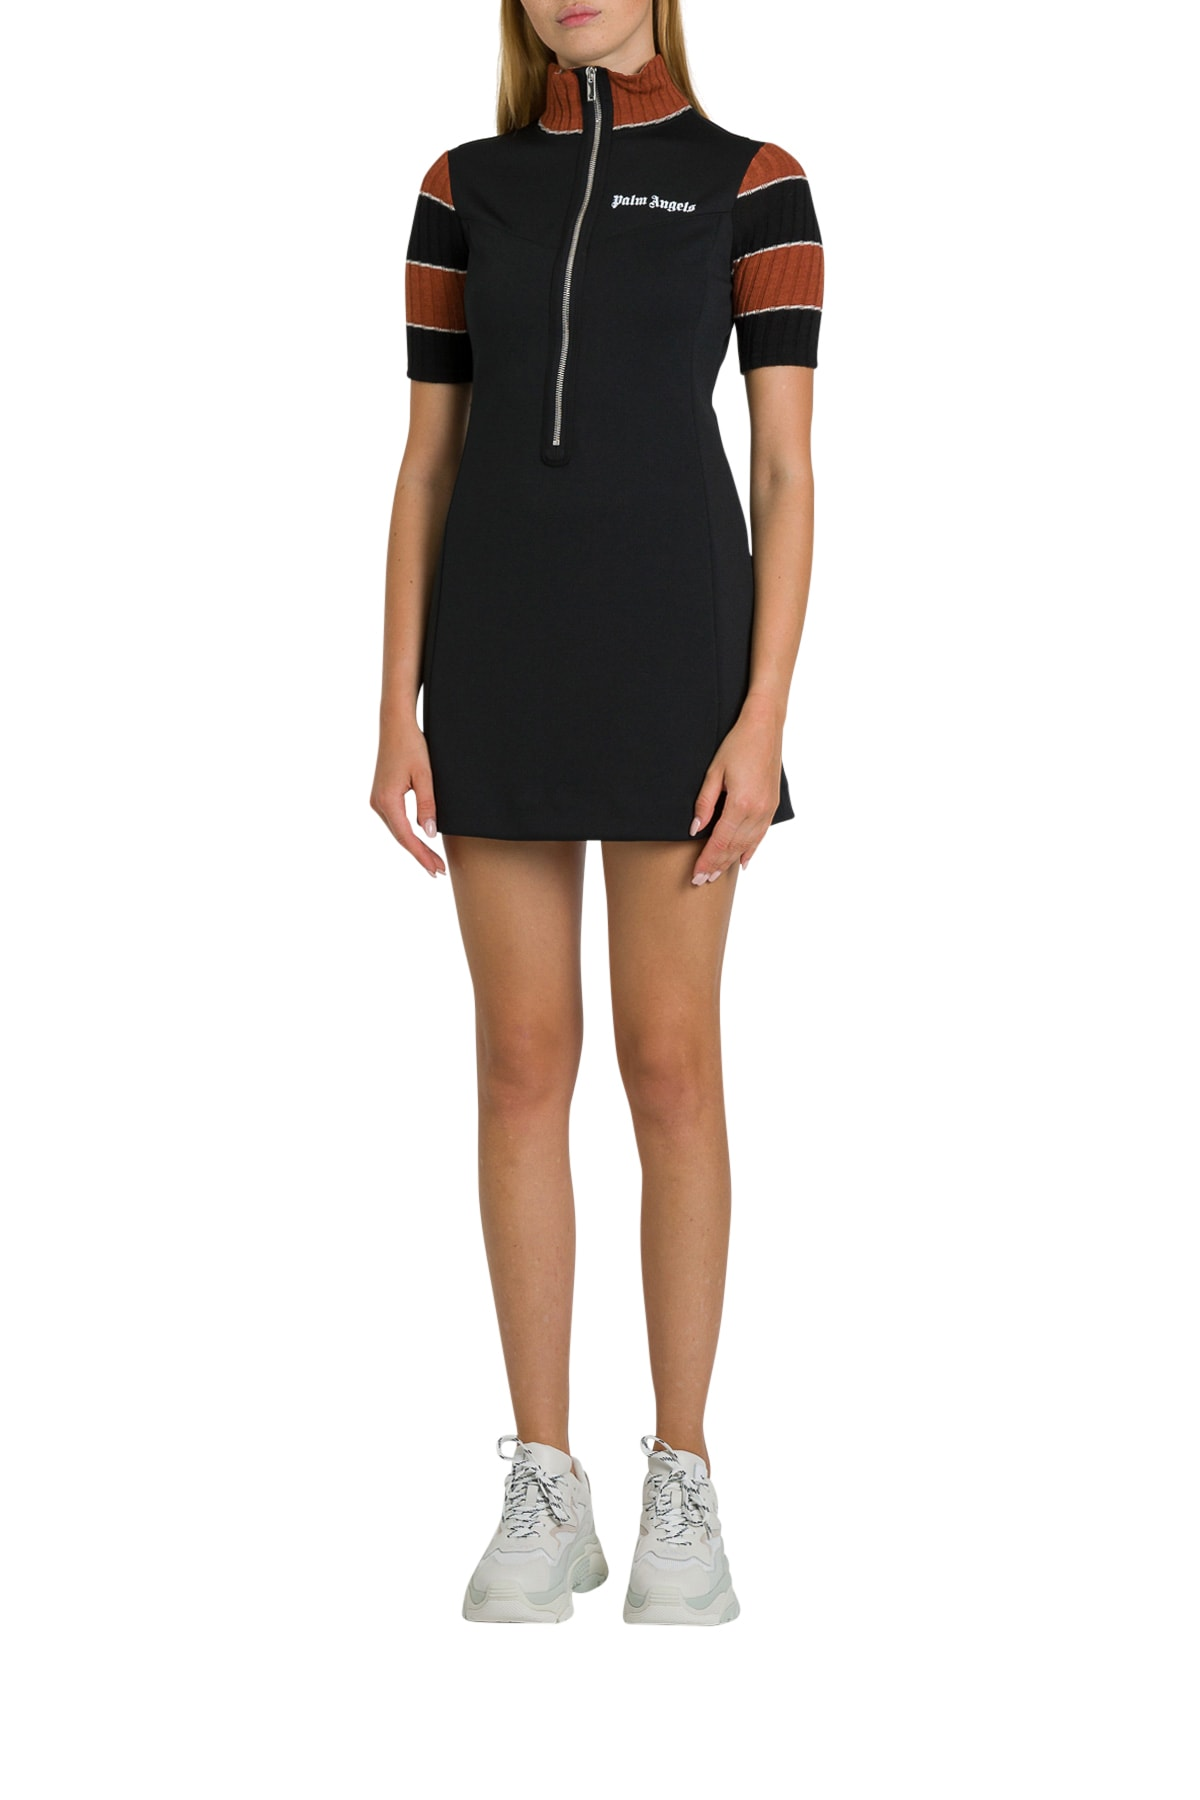 Palm Angels A-line Minidress